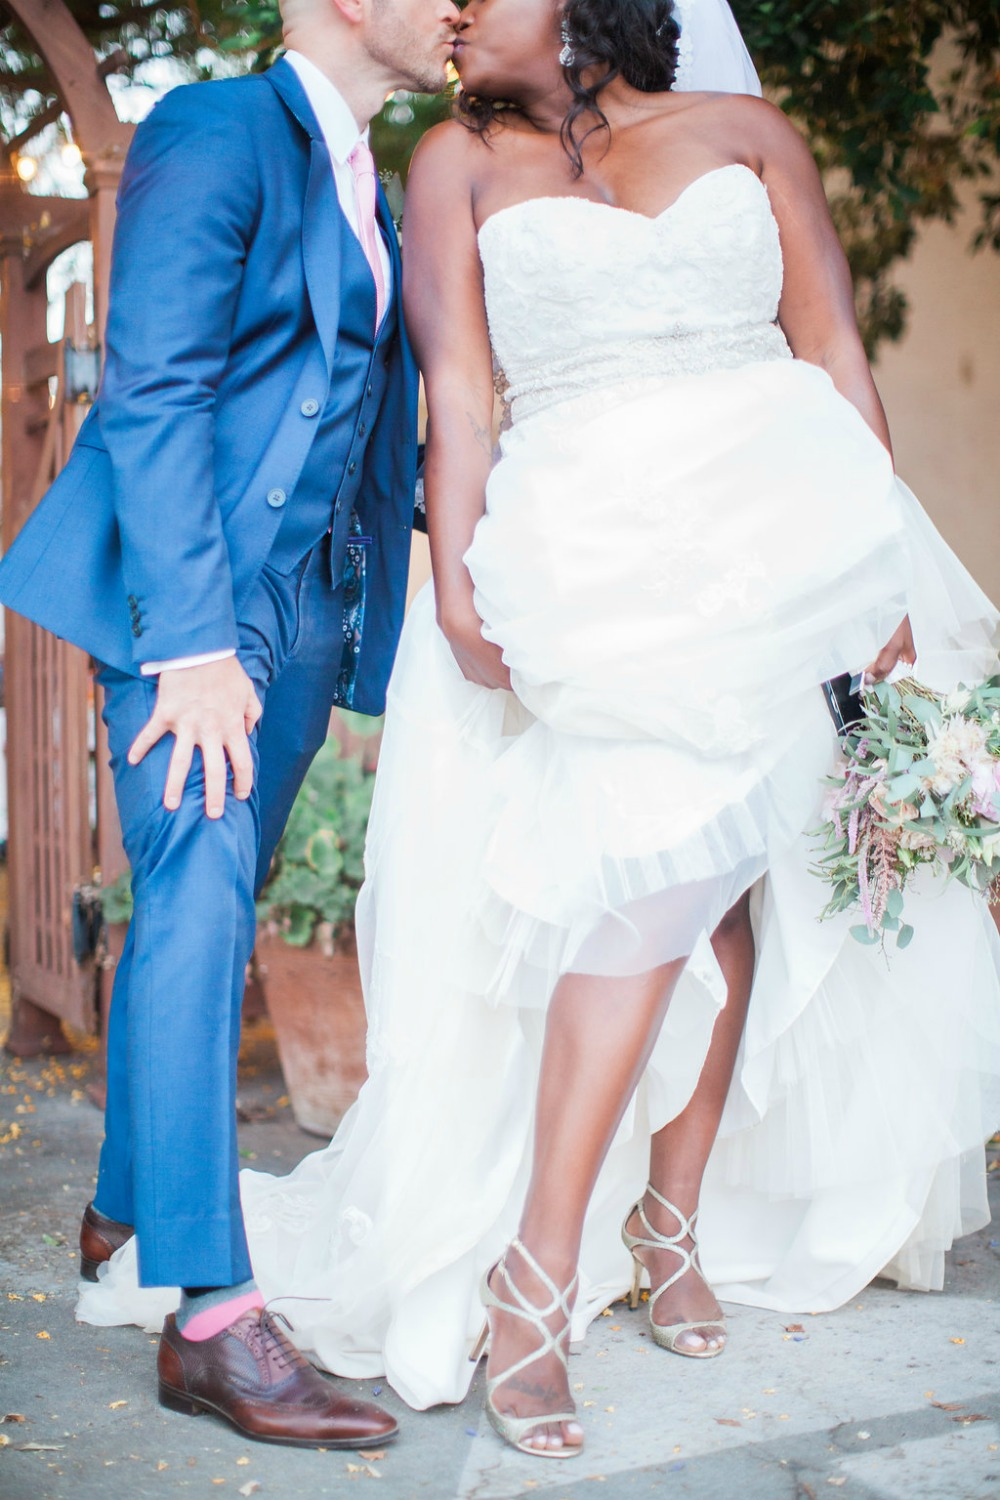 plus-sized wedding gown from casablanca